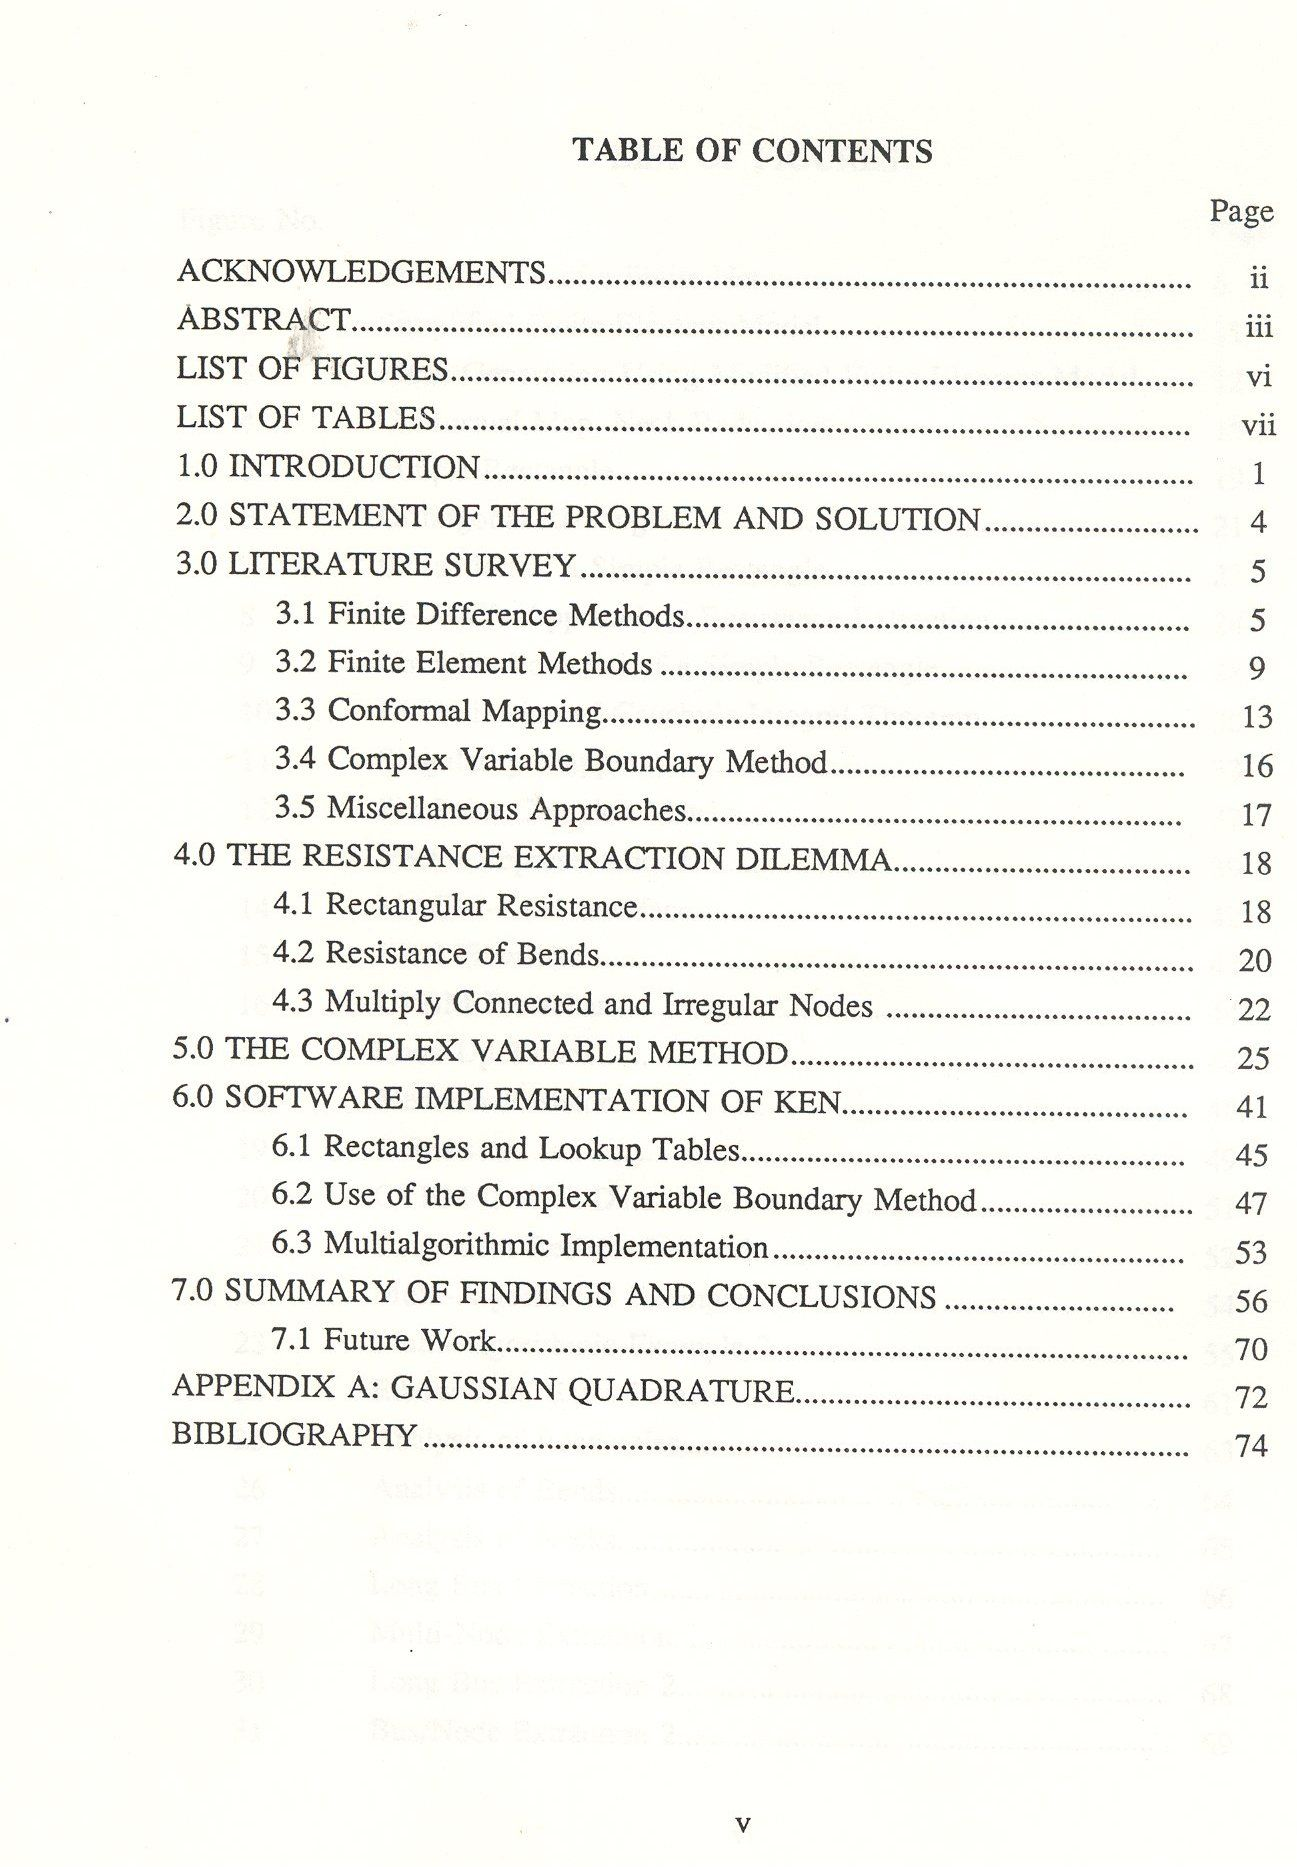 How to write a contents page for a dissertation